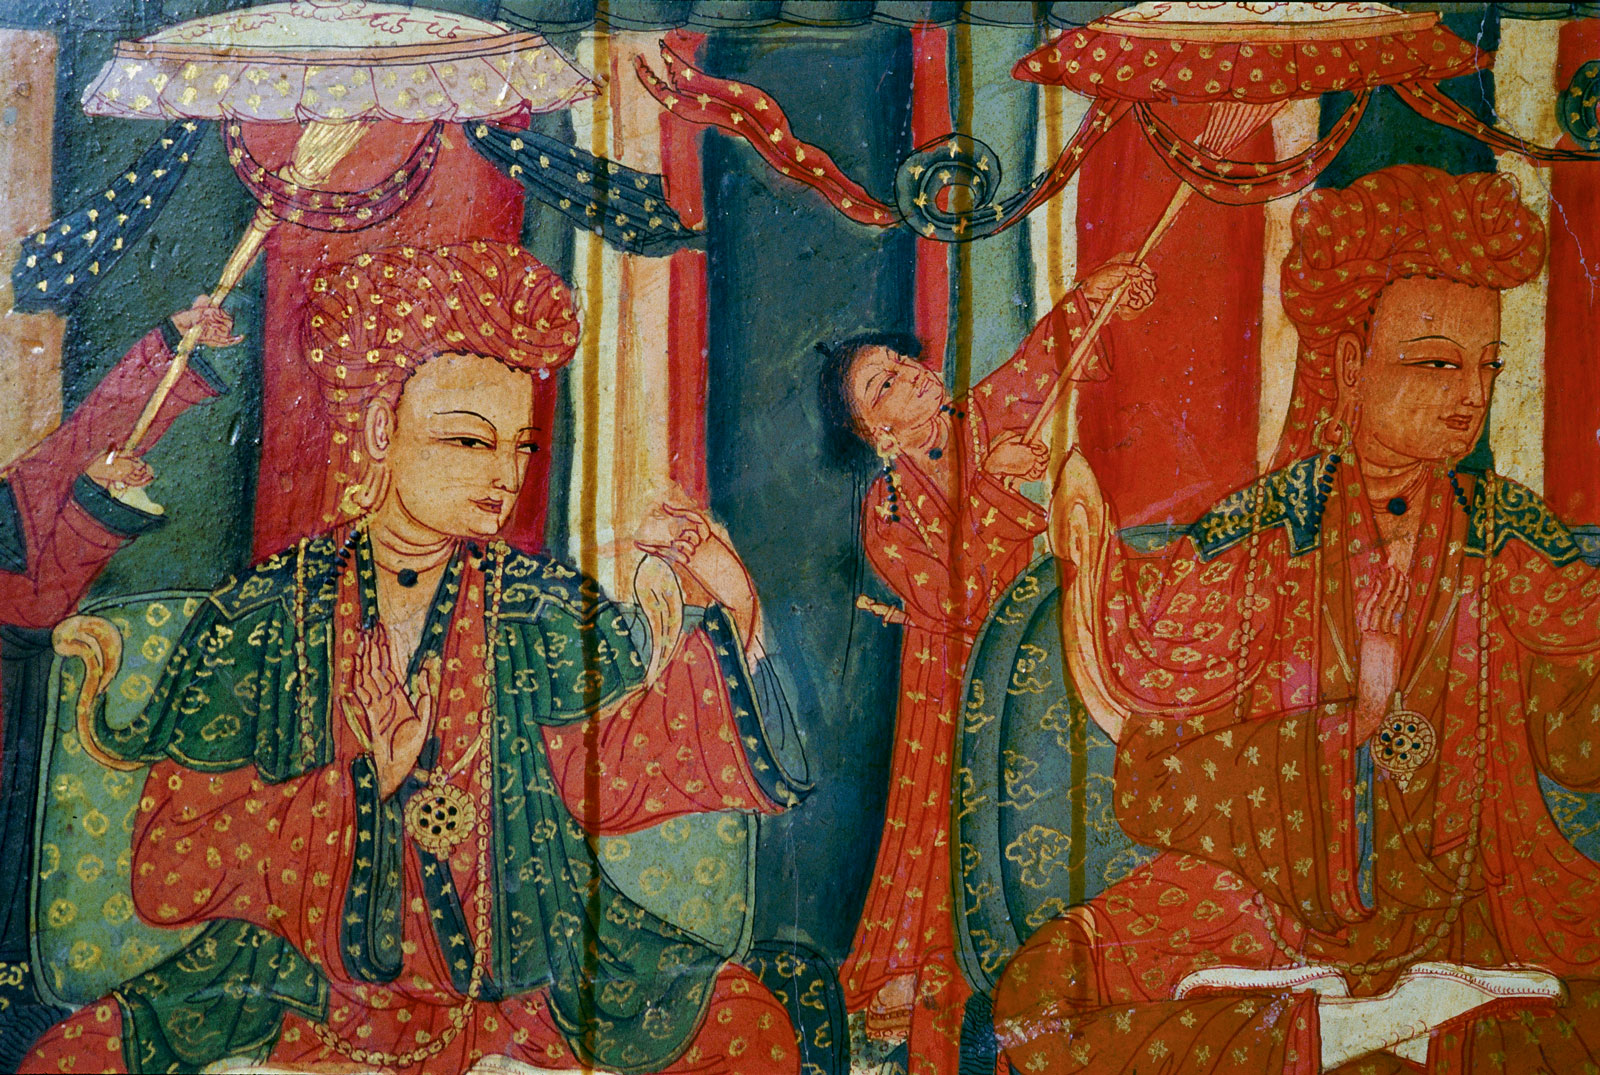 Detail of a wall painting in the Red Temple showing members of the Guge royal family attending the consecration of the temple, Tsparang, fifteenth century